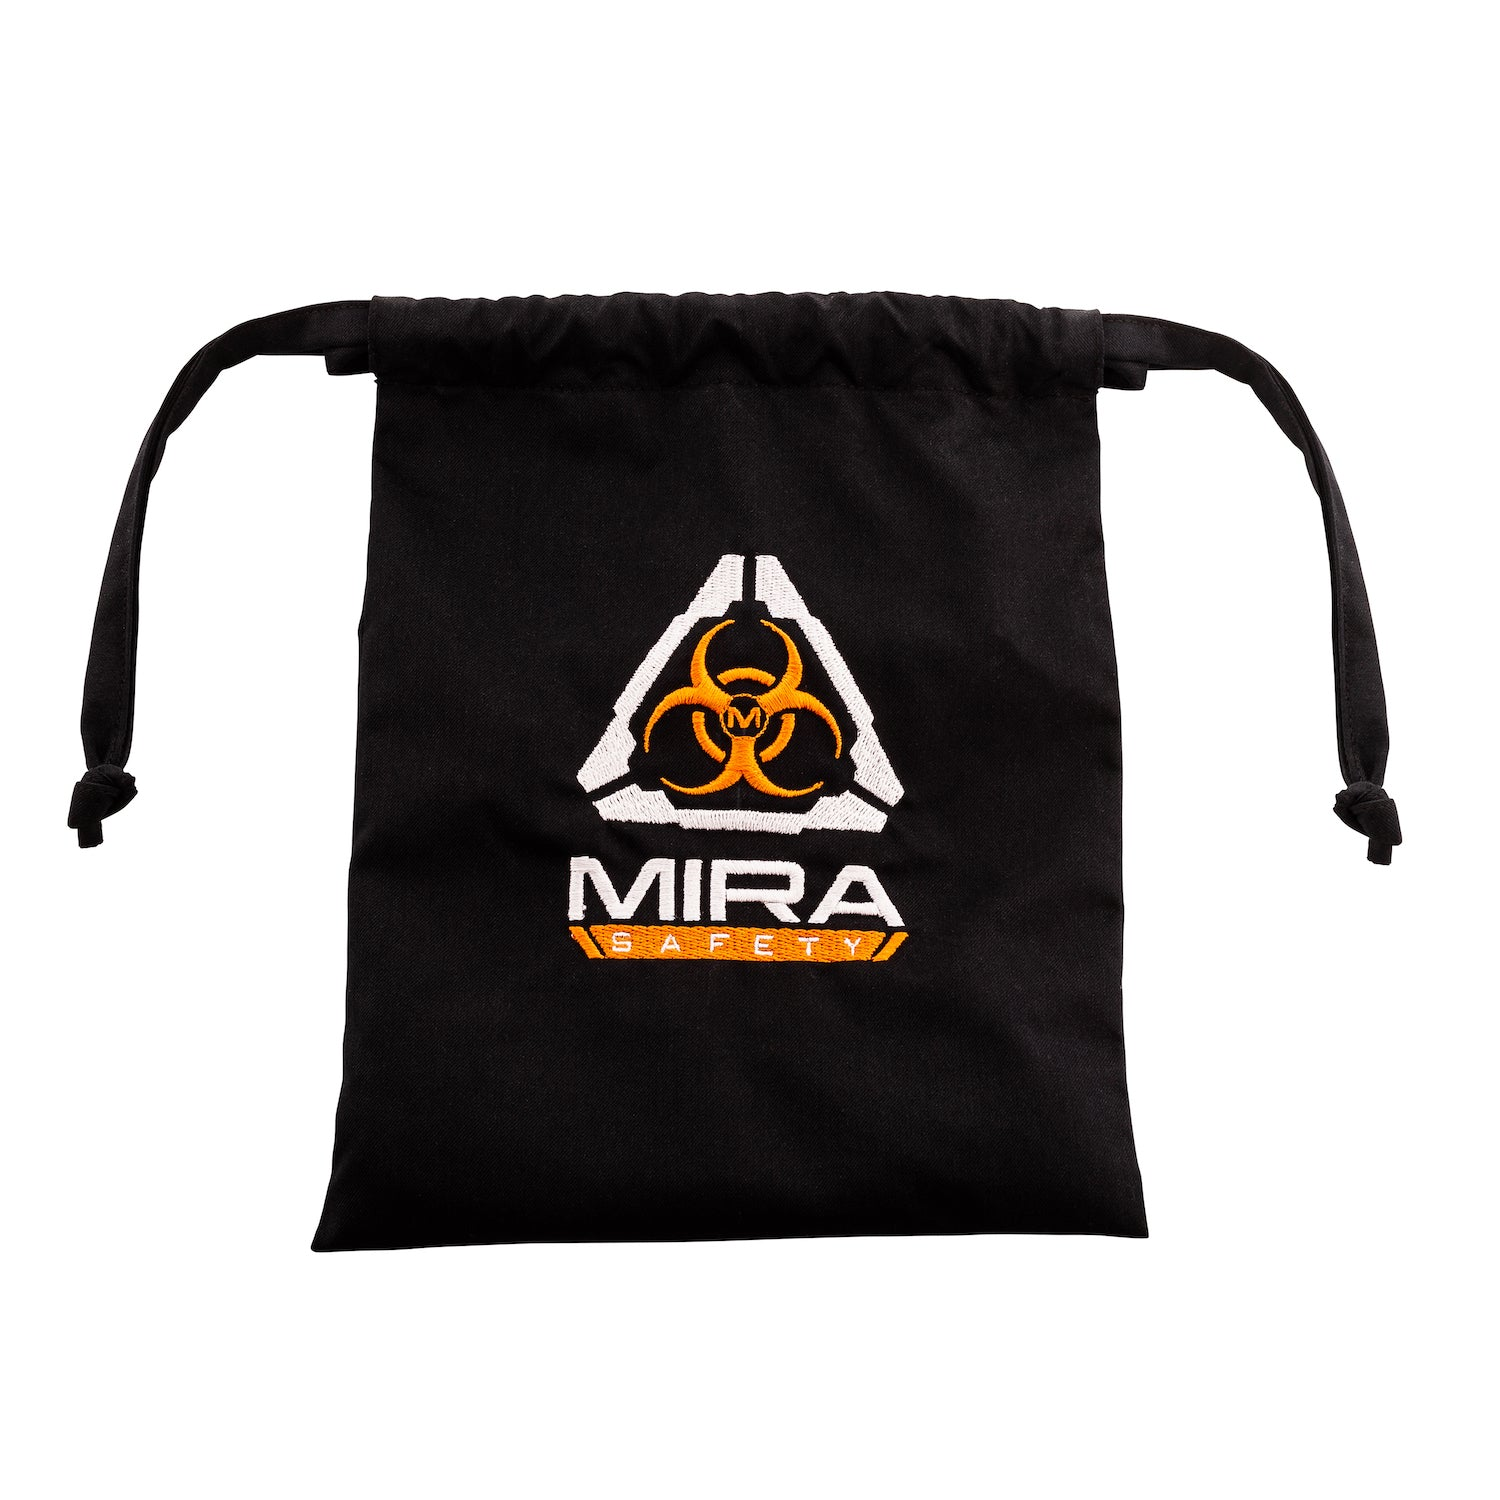 Face mask bag with the biohazard insignia, and MIRA Safety classic logo